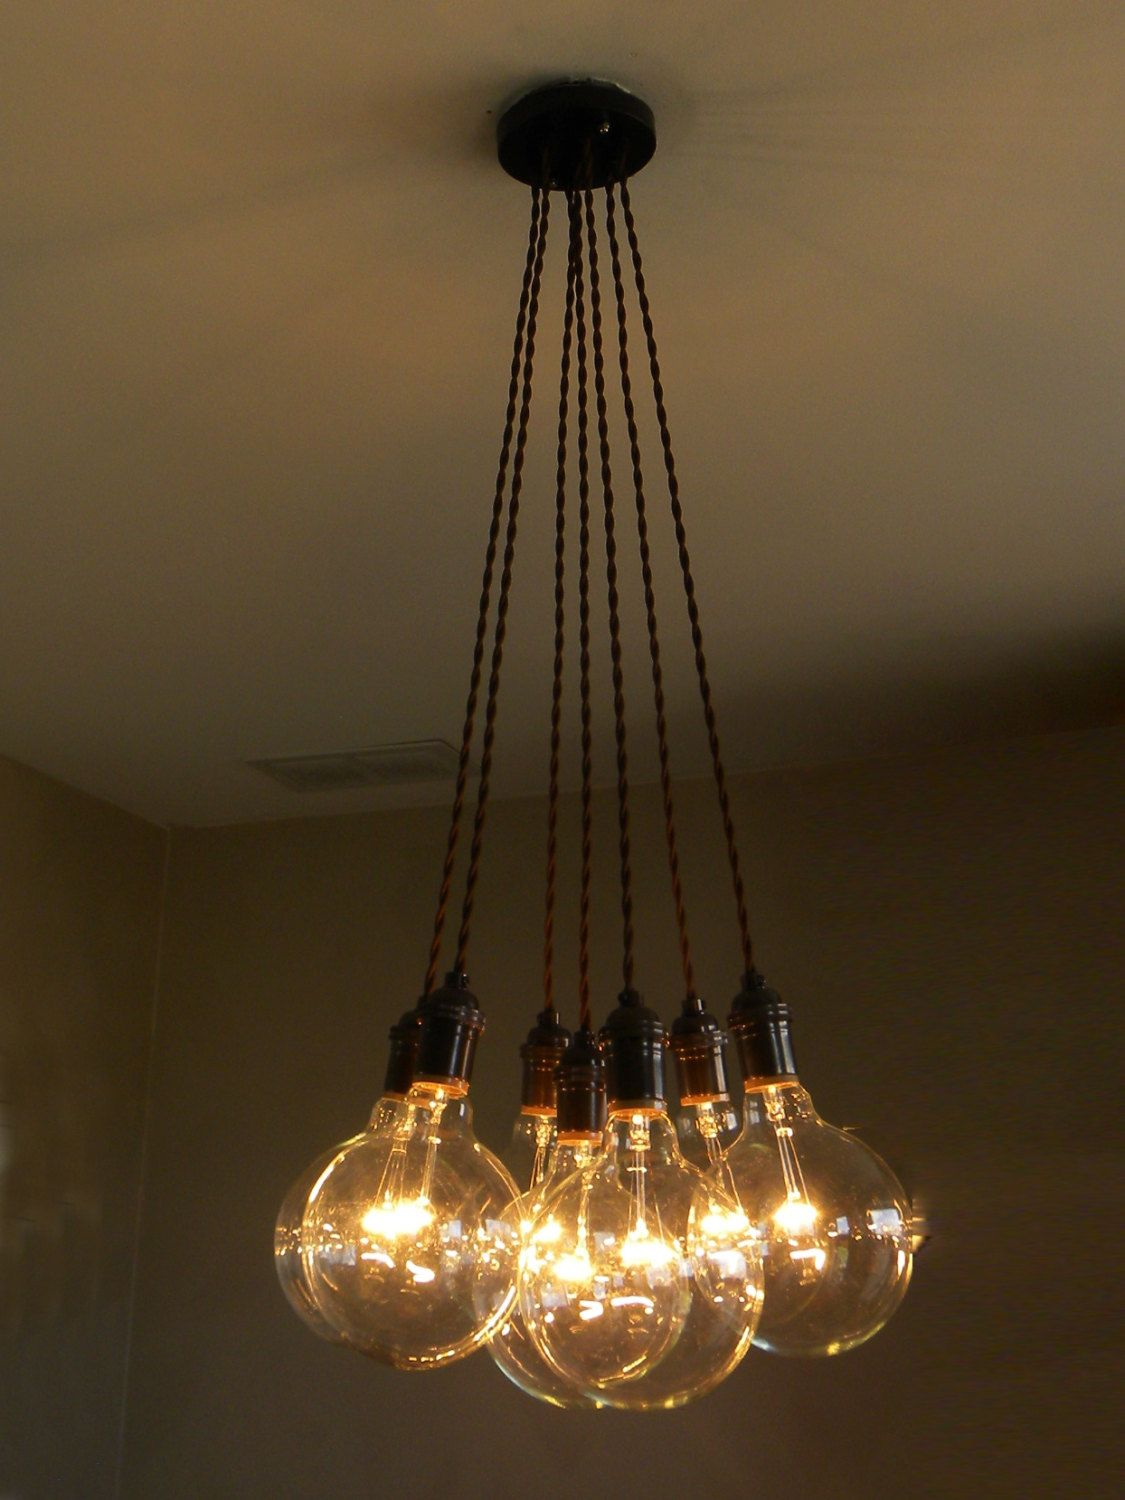 Special vintage style industrial edison ceiling lamp w bulb old - 7 Cluster Standard Antique Globe Chandelier Glass Edison Bulbs Modern Pendant Lighting Industrial Pendant Lamp Hanging